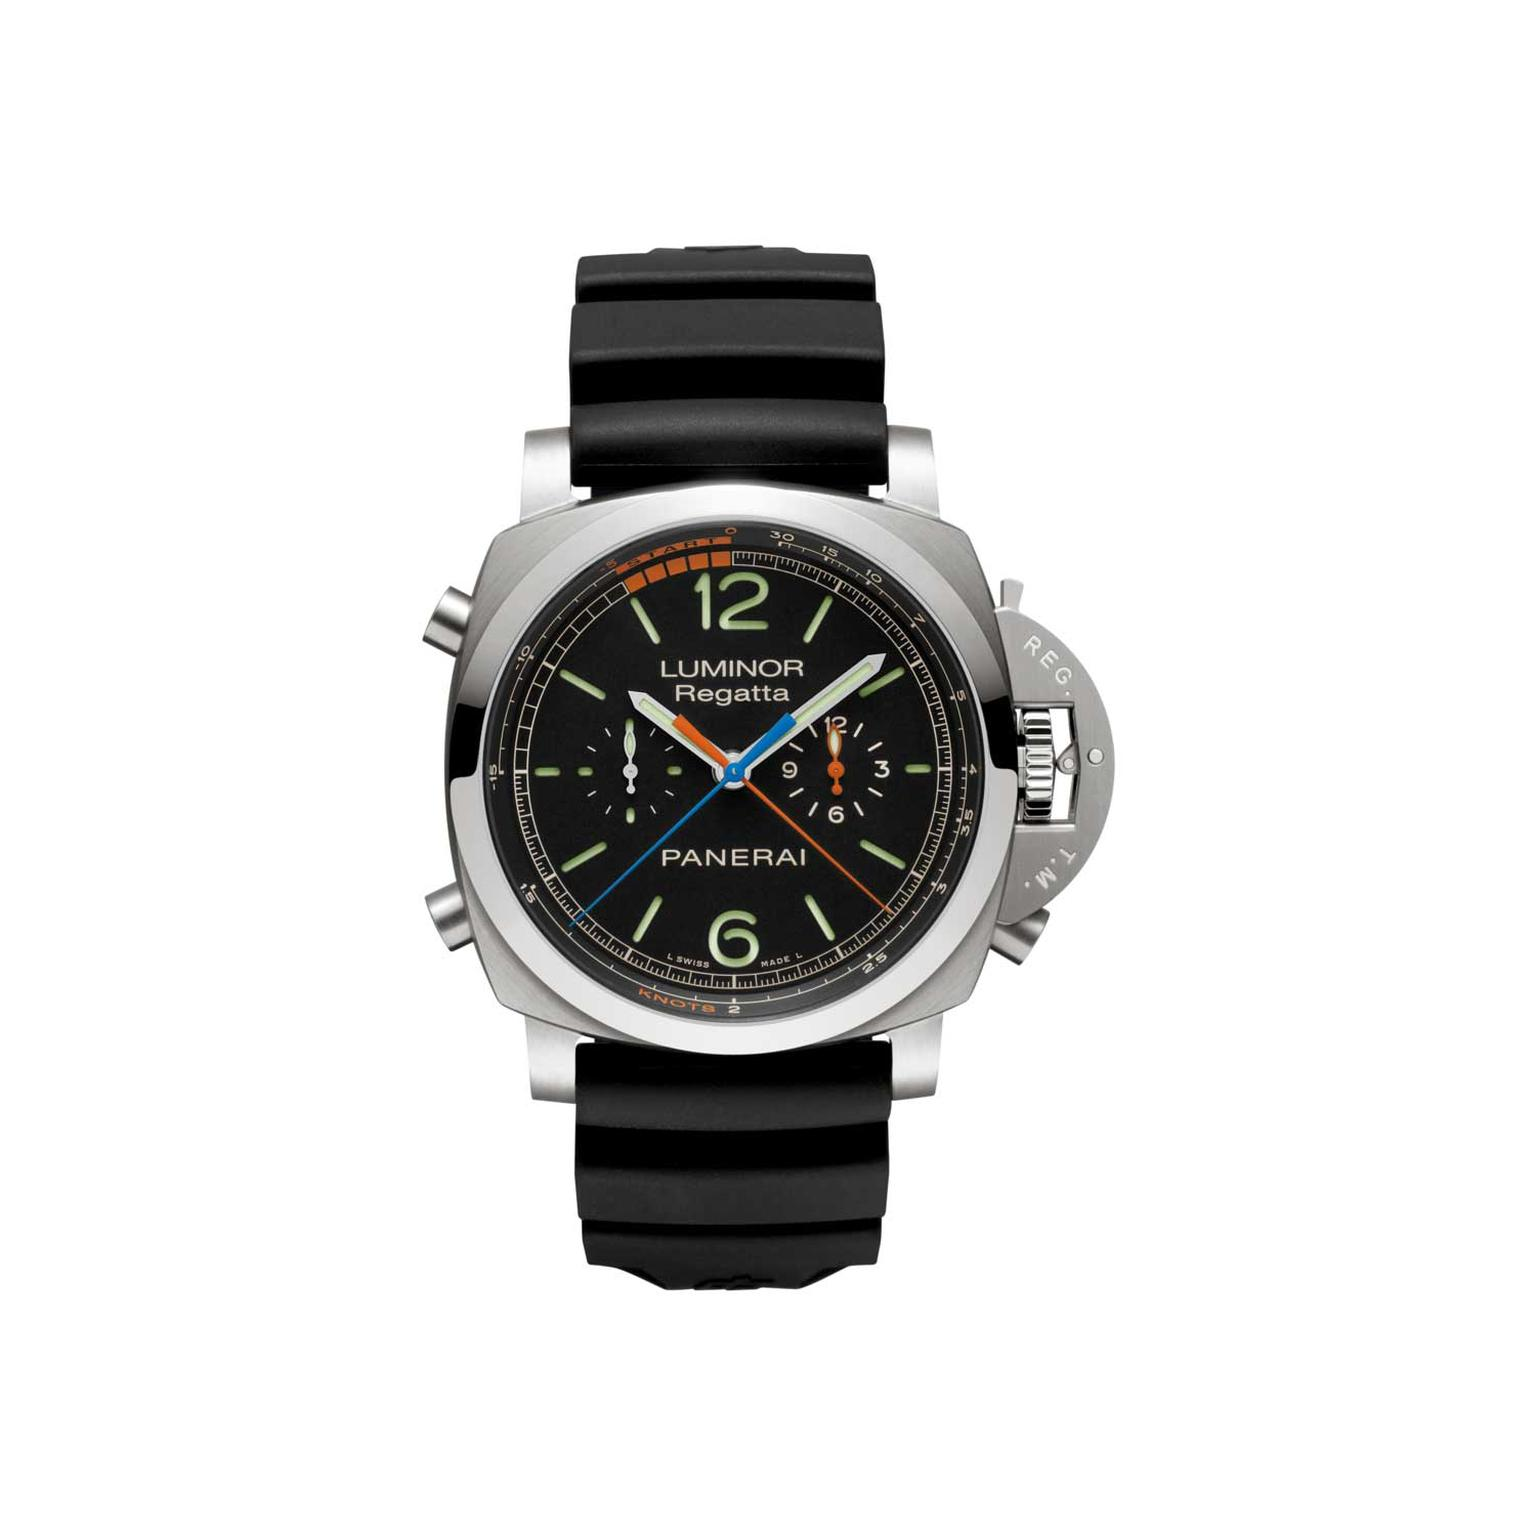 Panerai Luminor 1950 Regatta titanium